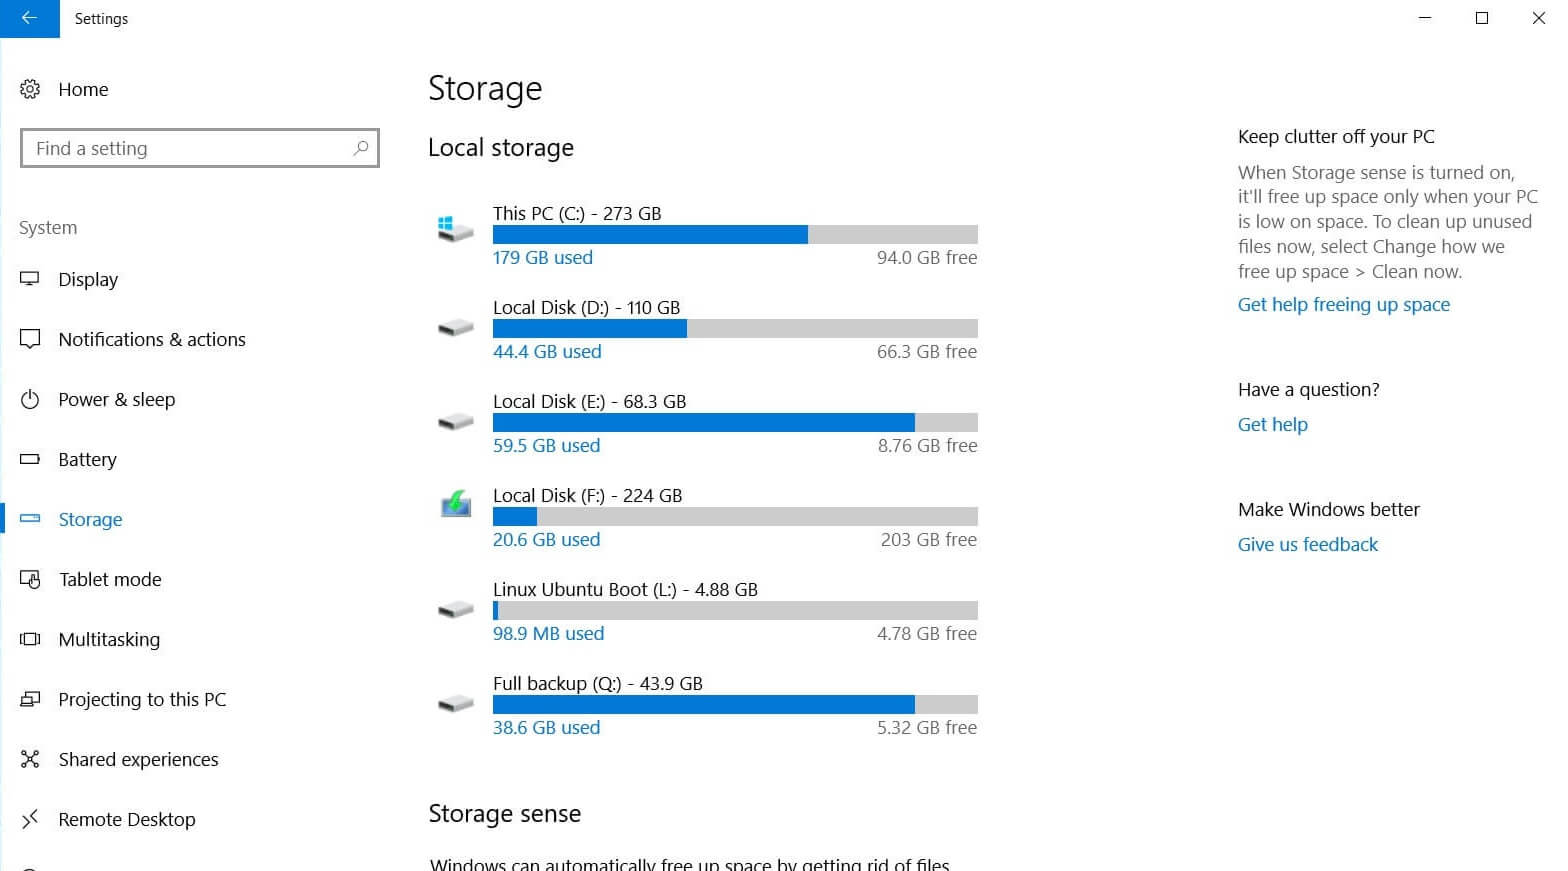 Storage in Windows 10